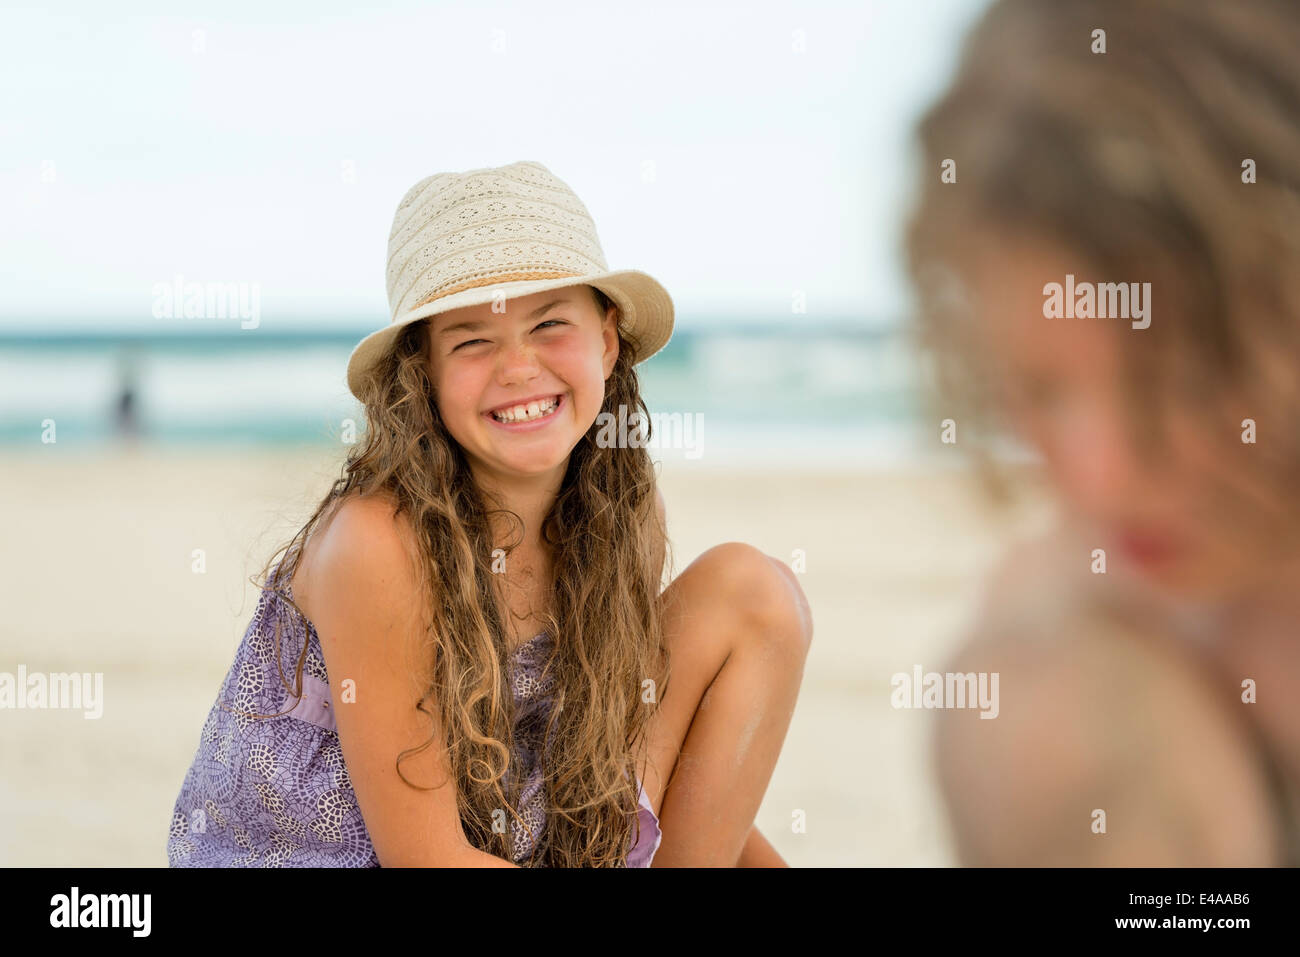 Australia, New South Wales, Pottsville, boy and girl playing in sand on beach - Stock Image